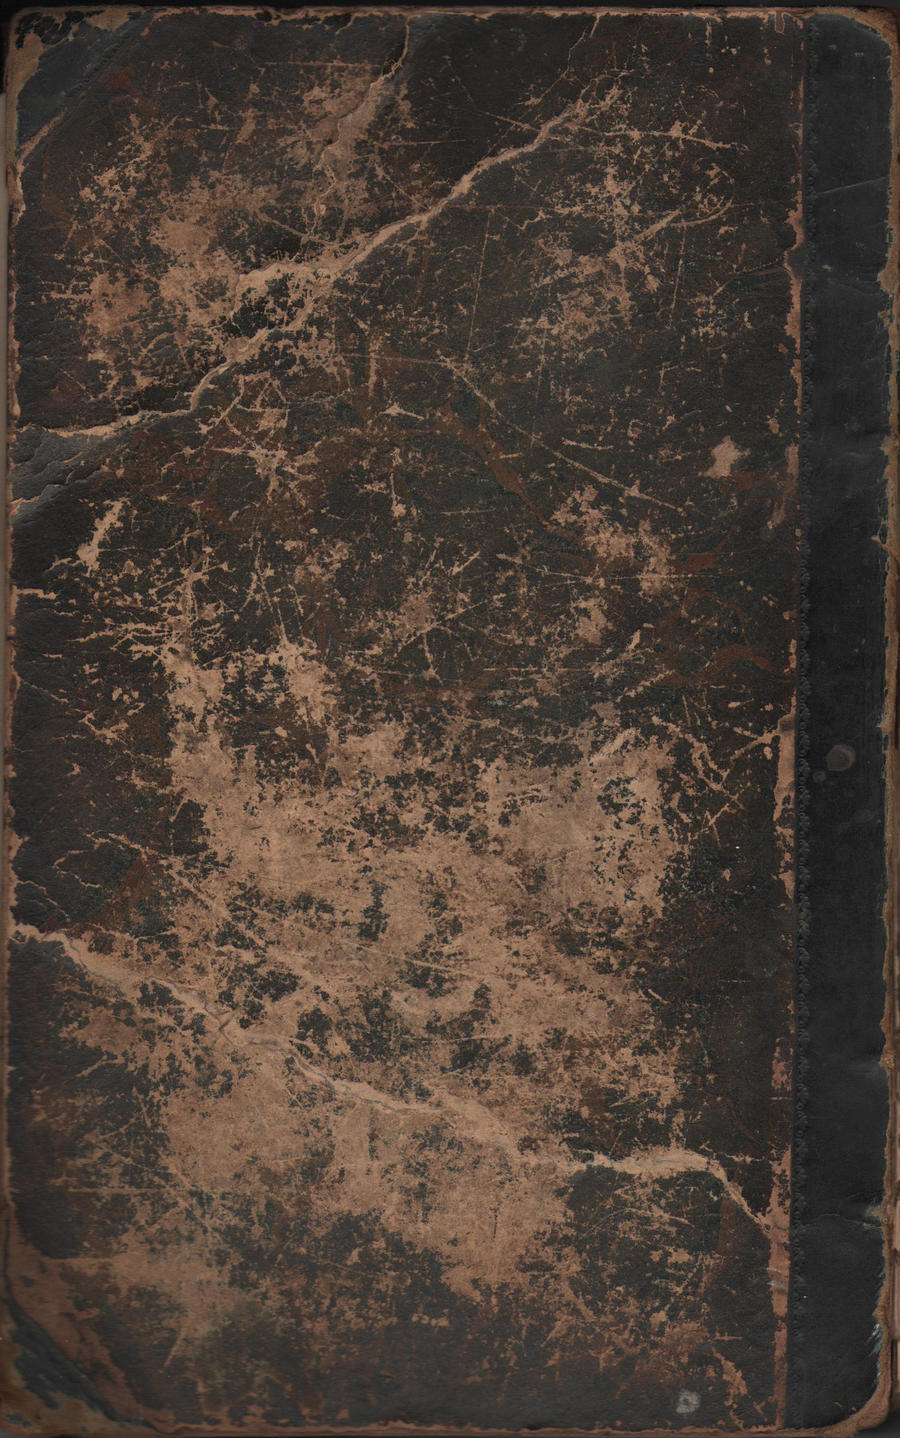 Old Leather Book Cover Texture : Old book cover a by generalvyse on deviantart